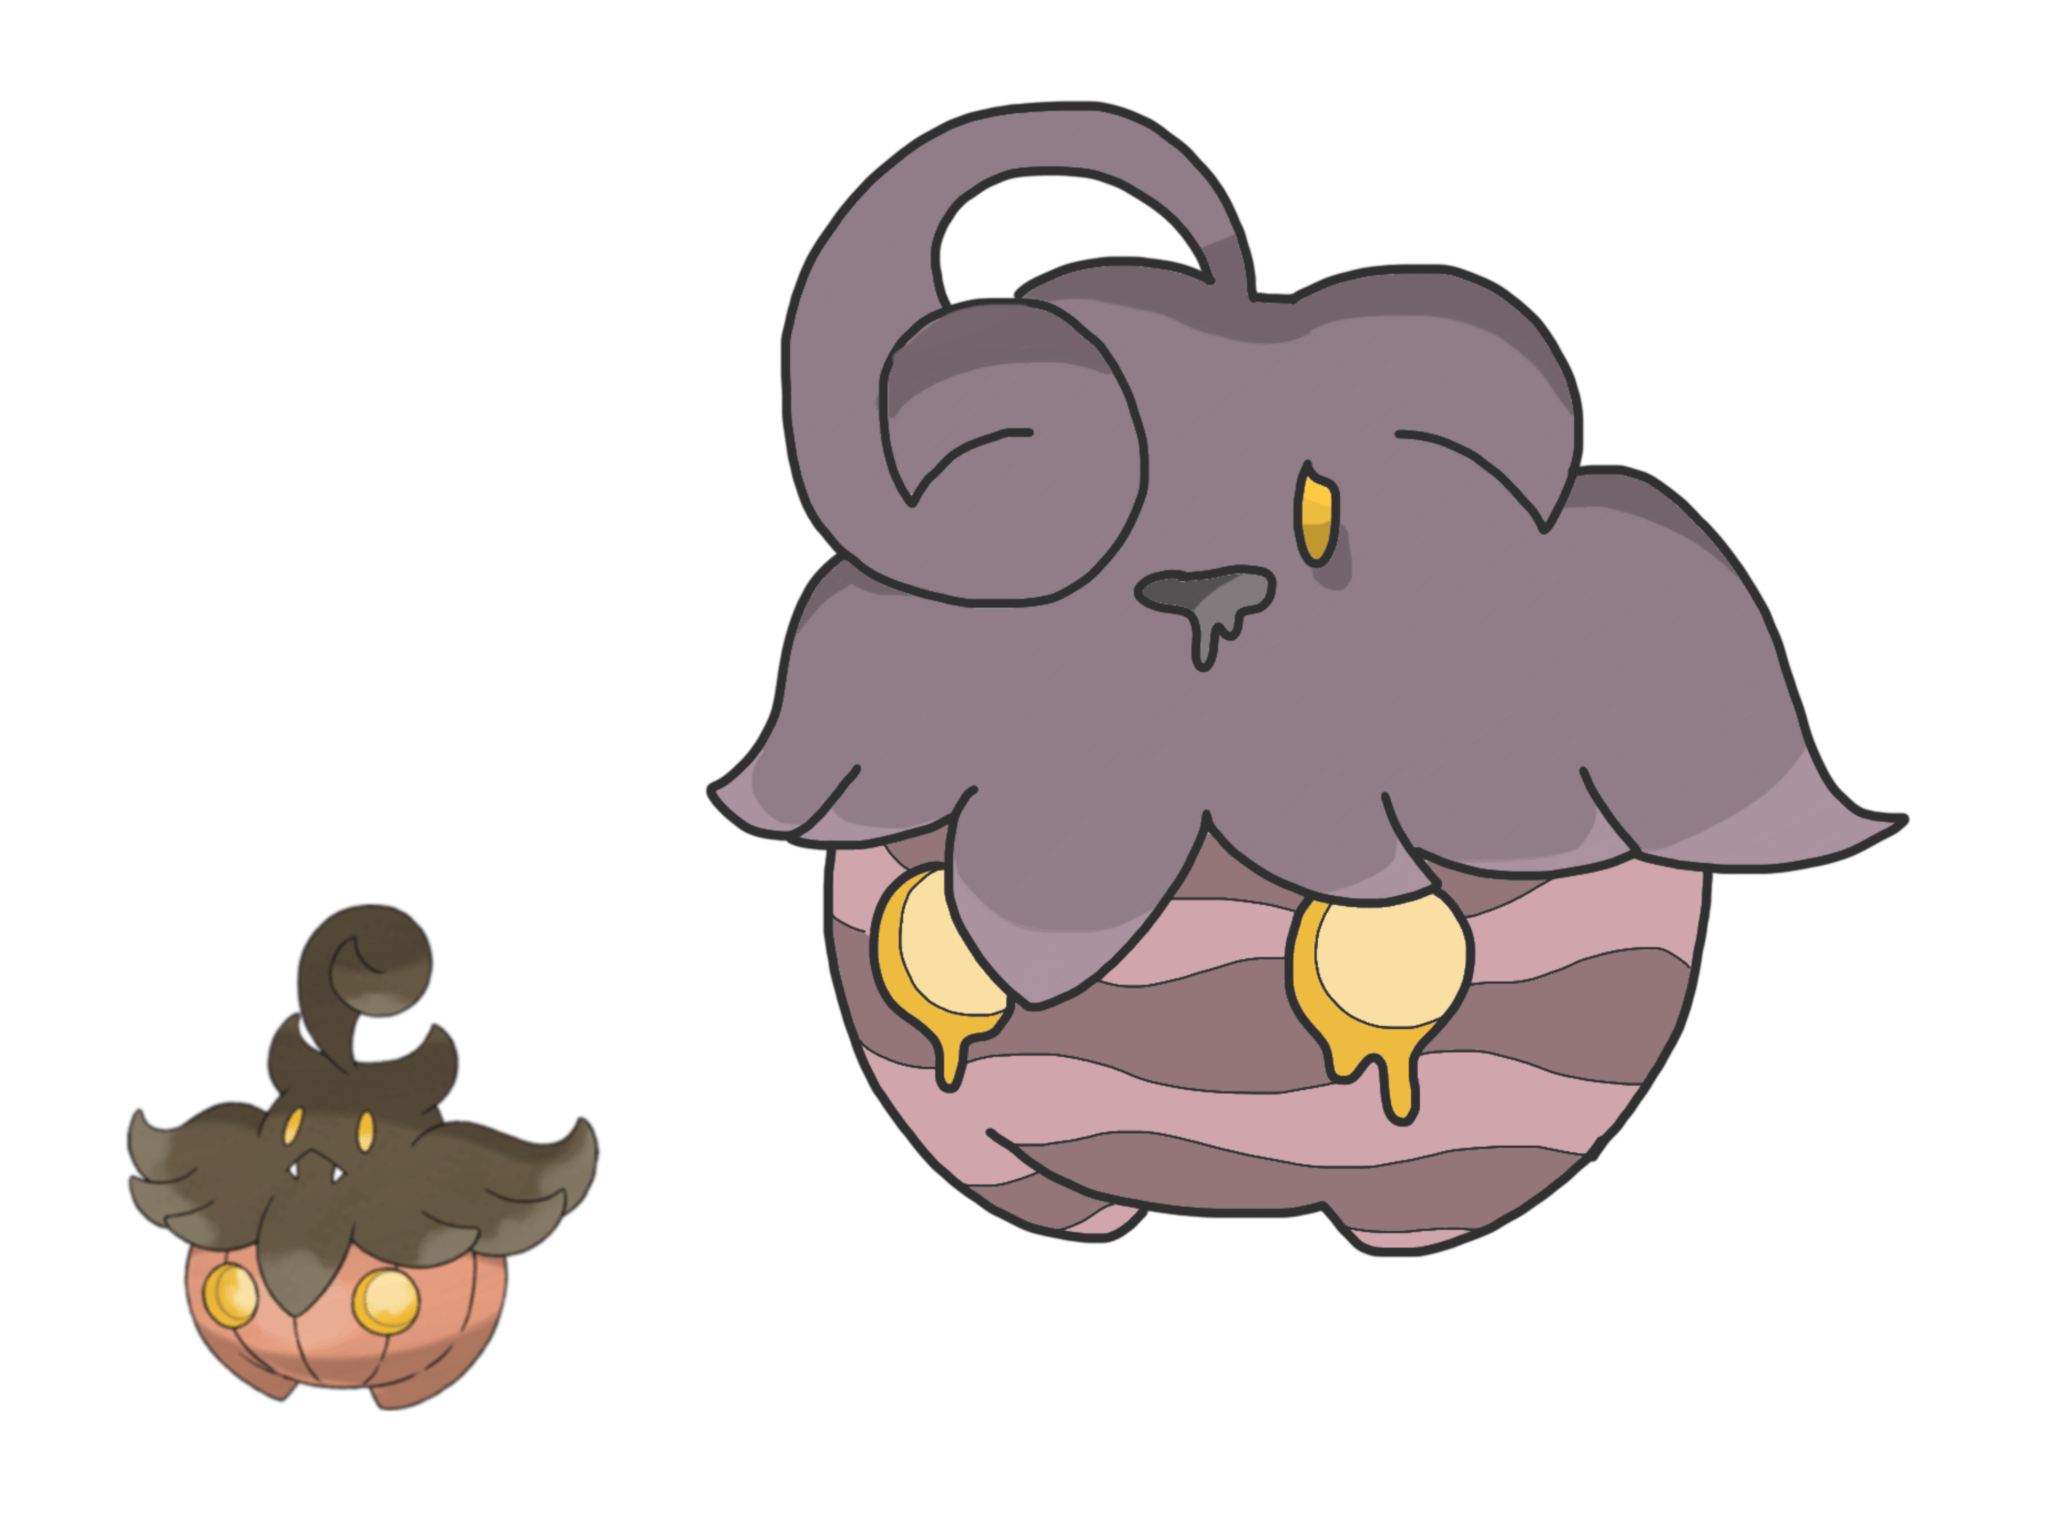 I made a Pumpkaboo variant based on a Pumpkaboo breeding with a